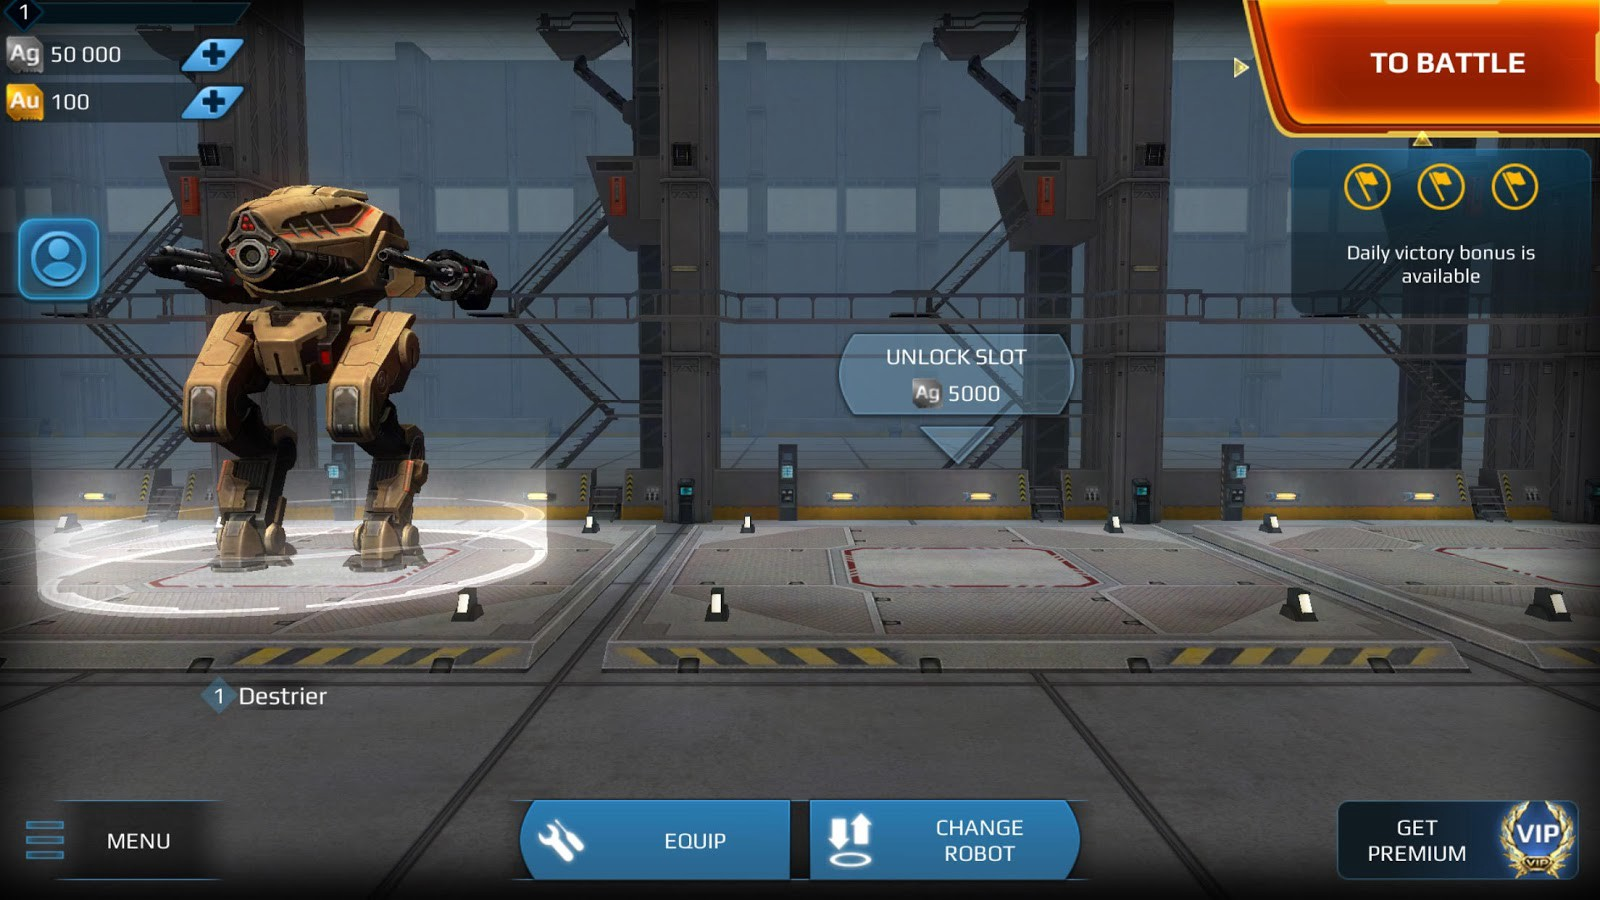 Hangar for new players where you can press nothing but the to battle button